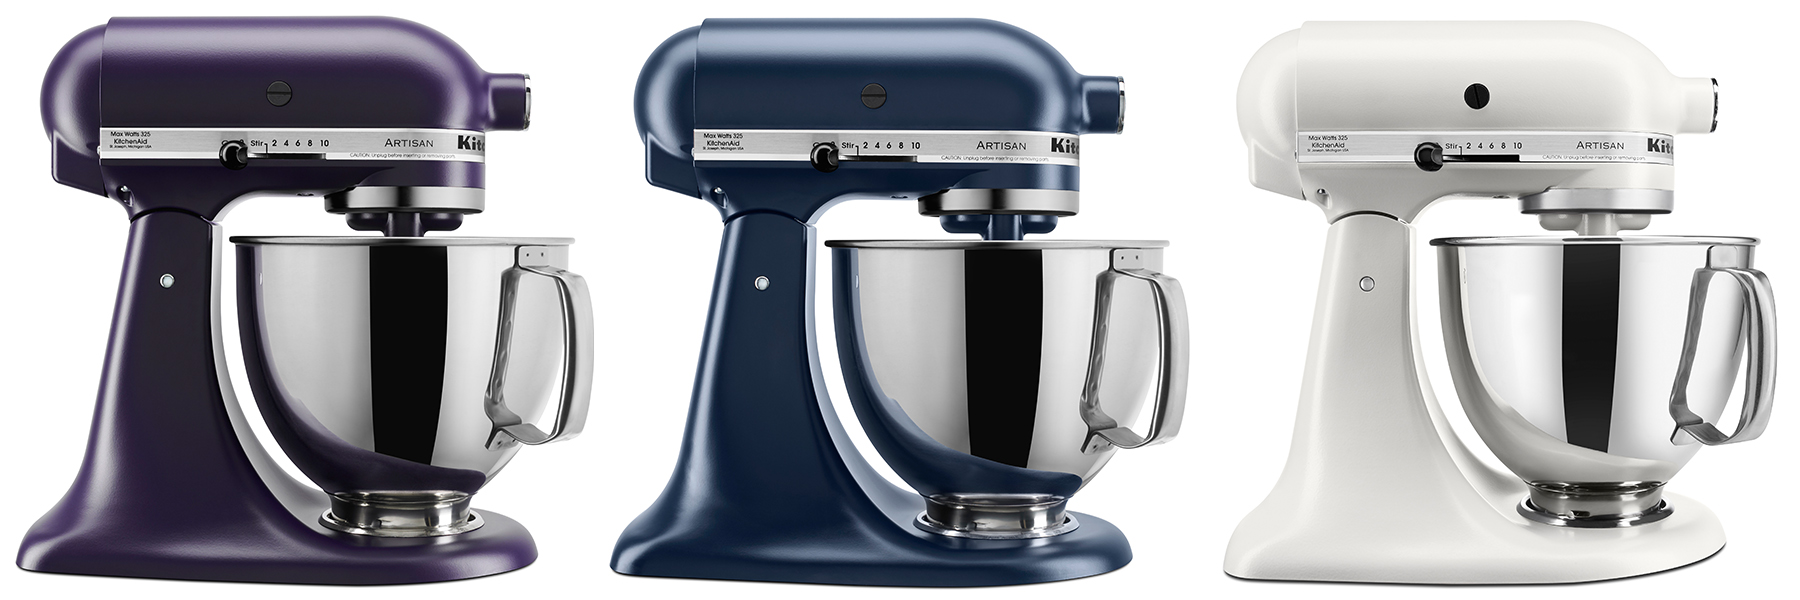 KitchenAid® New Stand Mixer Colors